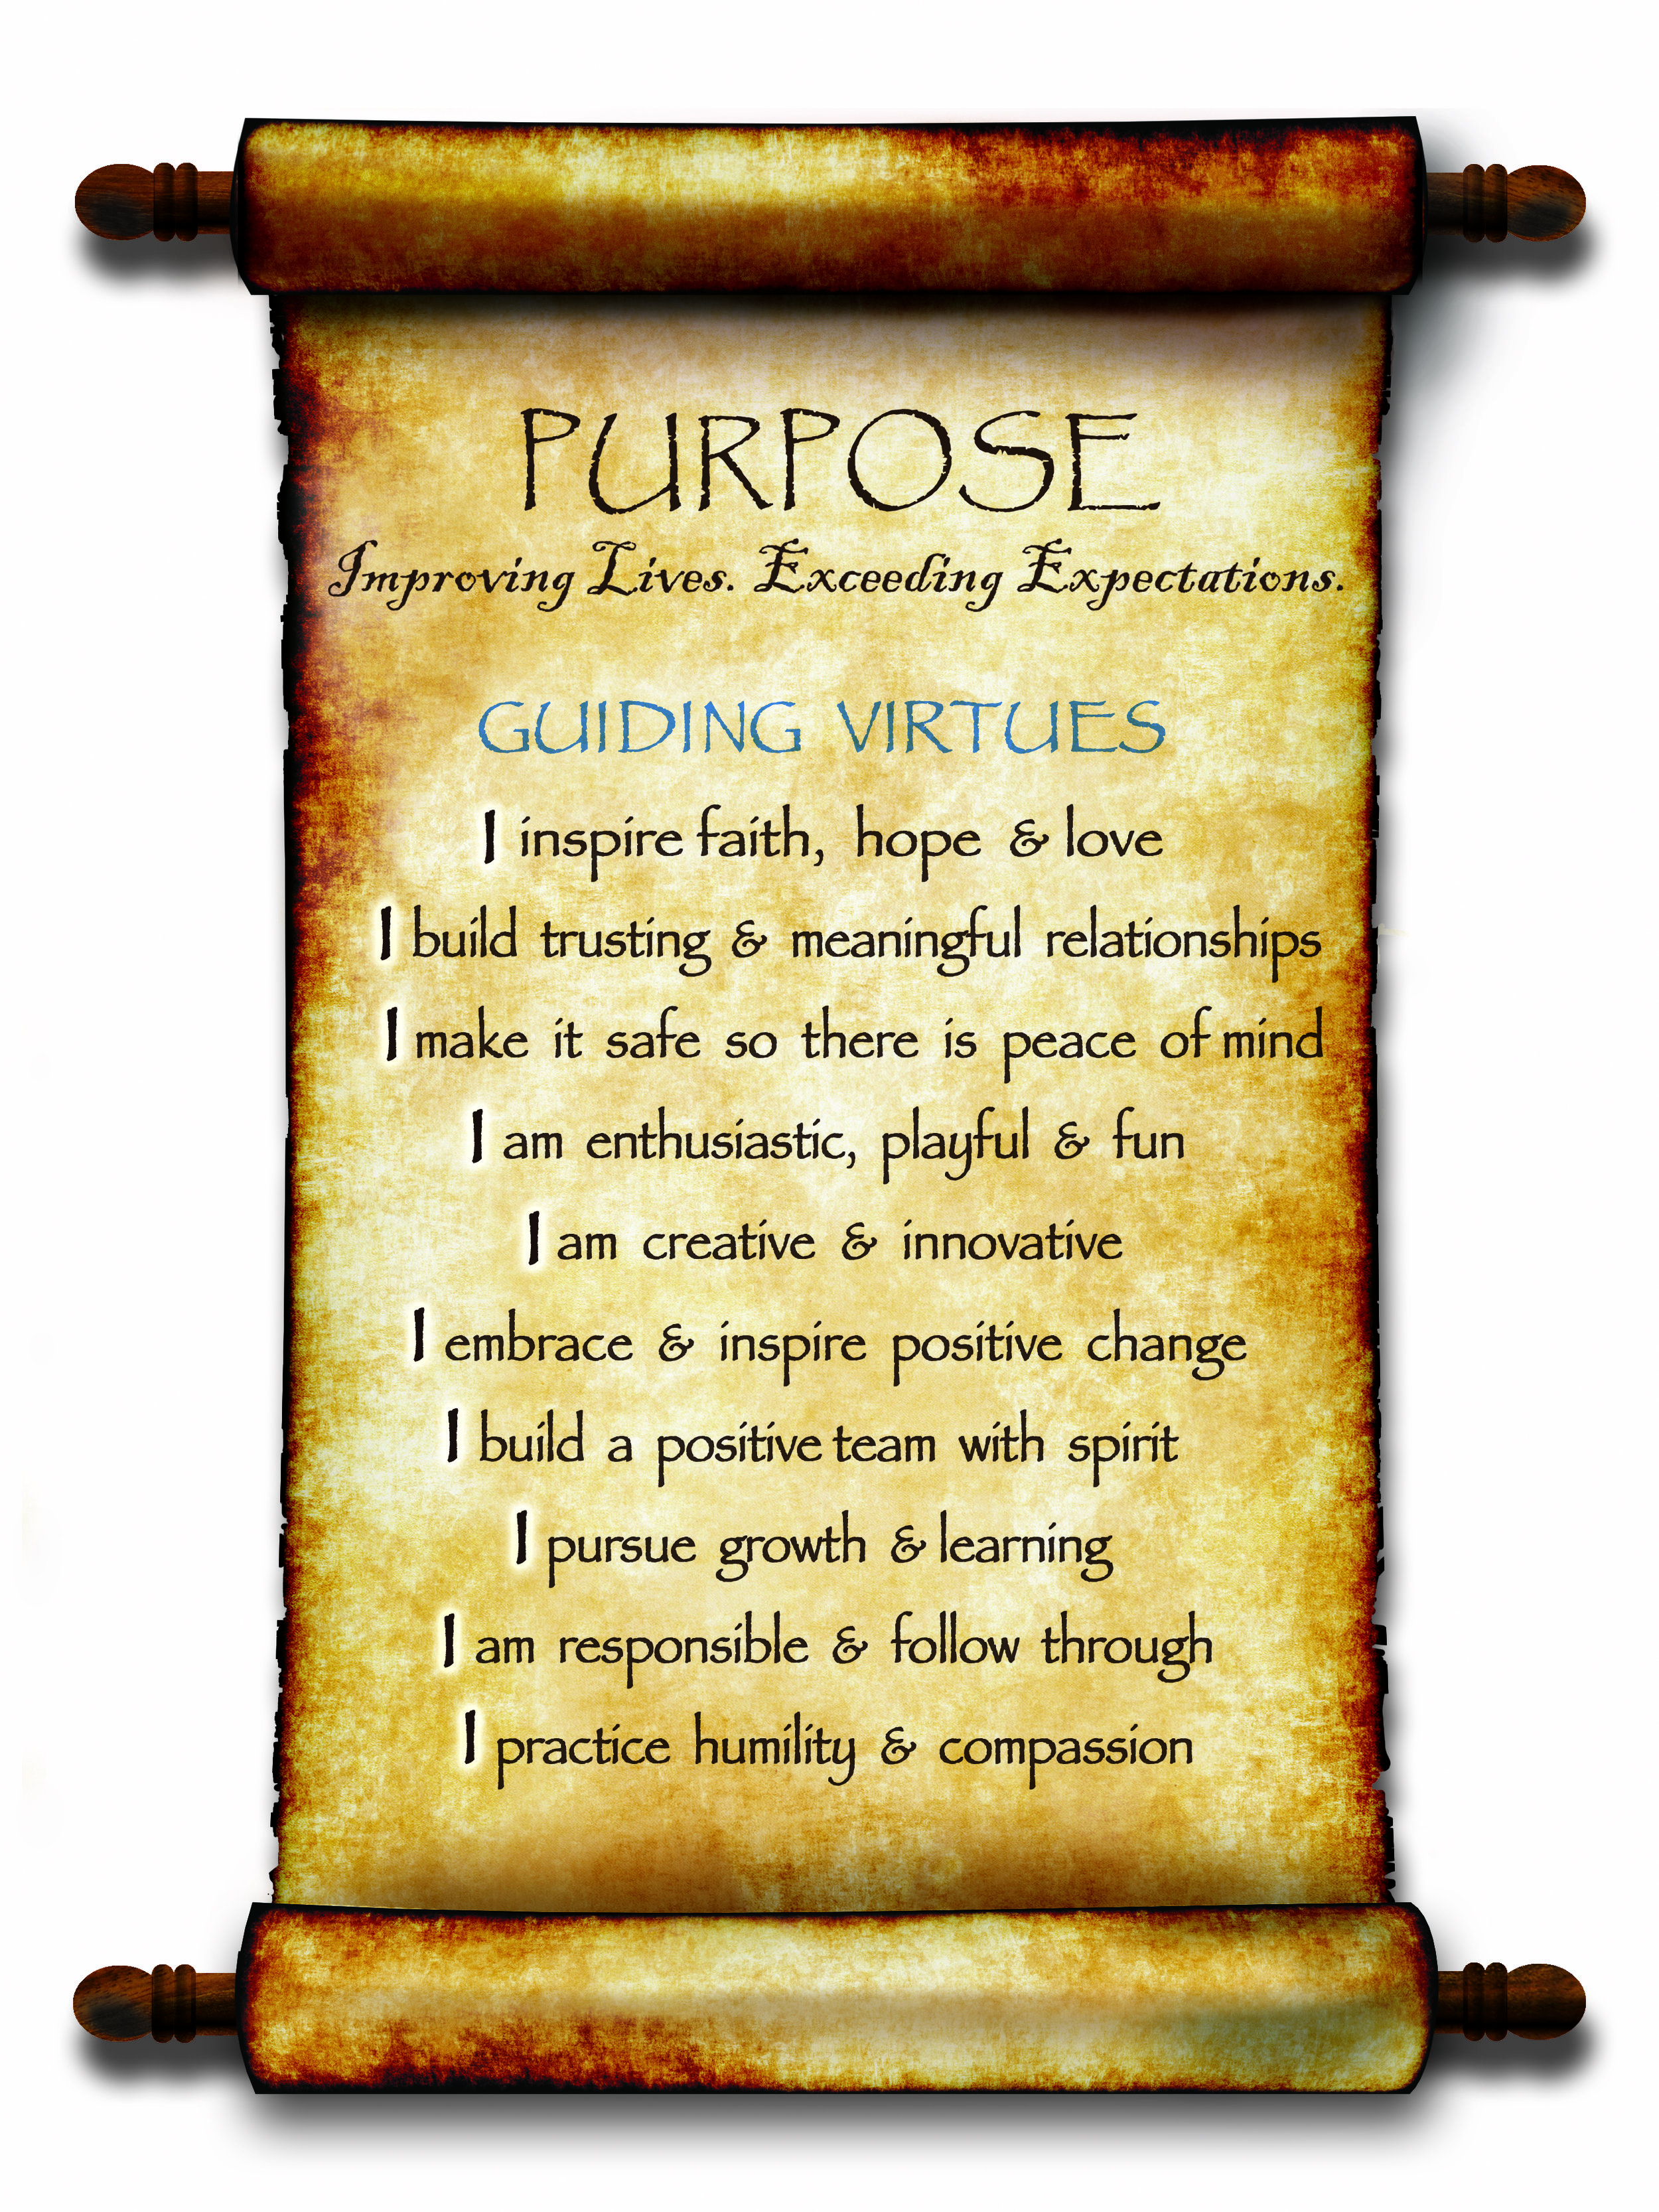 Guiding Virtues